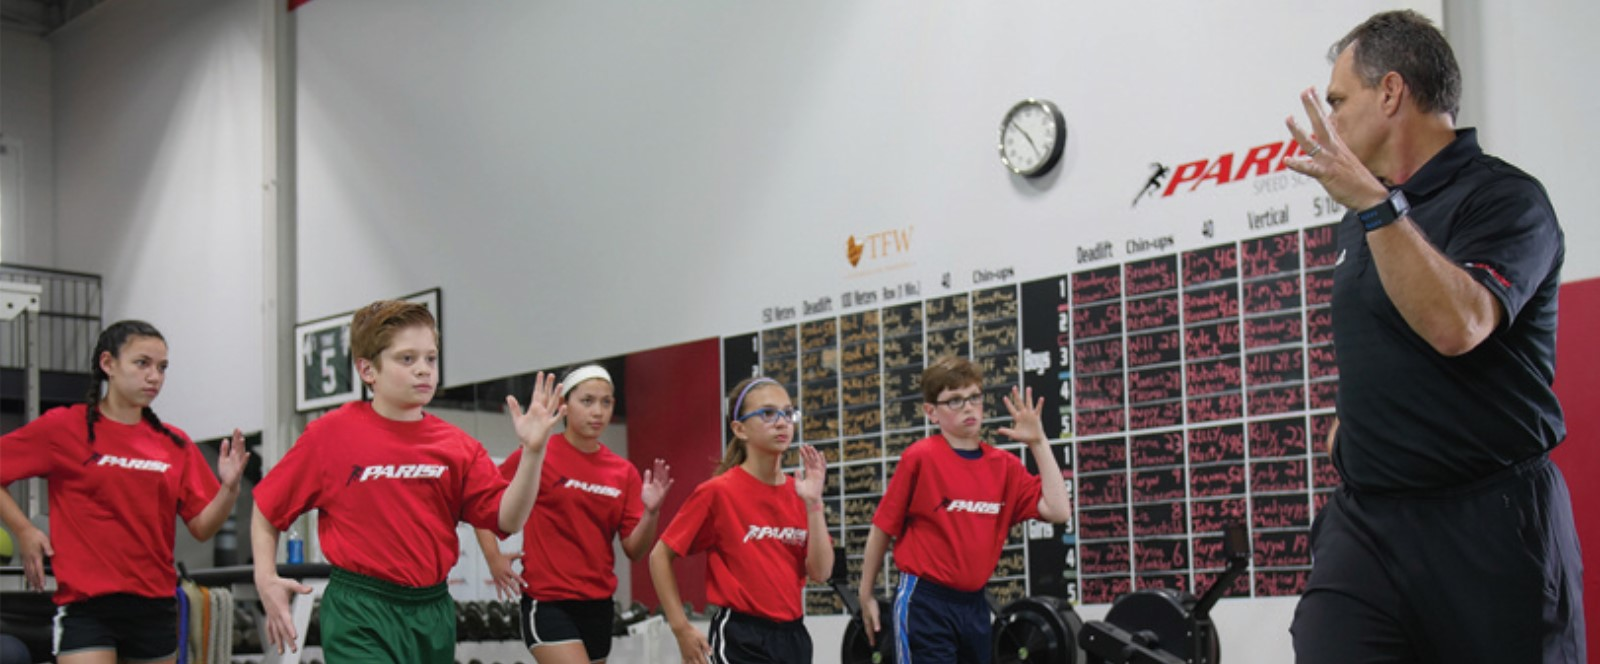 Parisi Schererville - Youth Training System - Training That